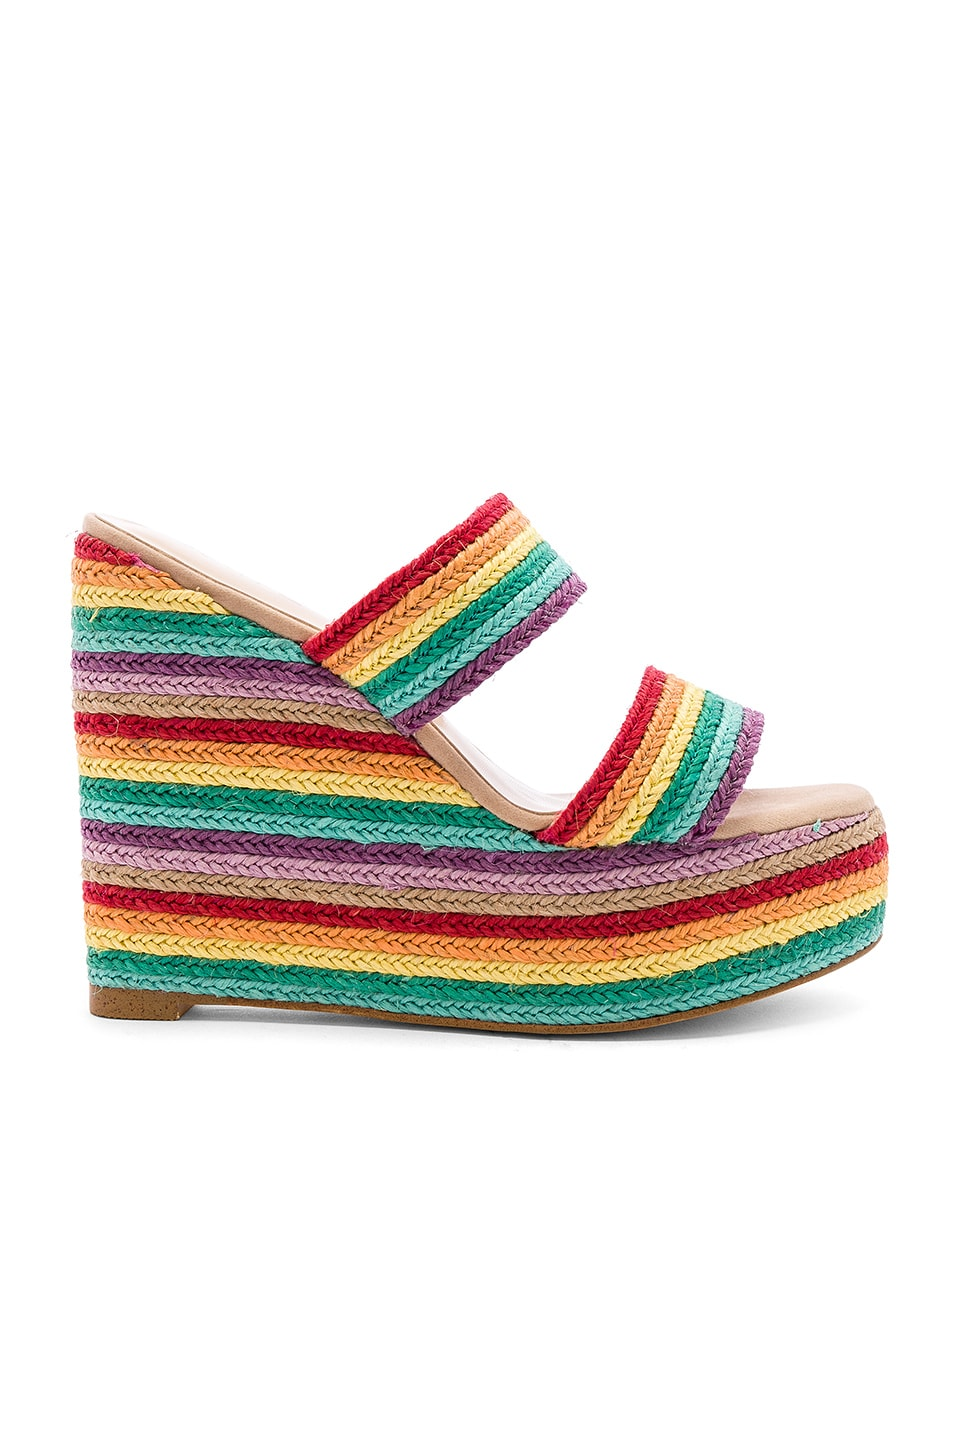 RAYE Islander Heel in Rainbow Multi